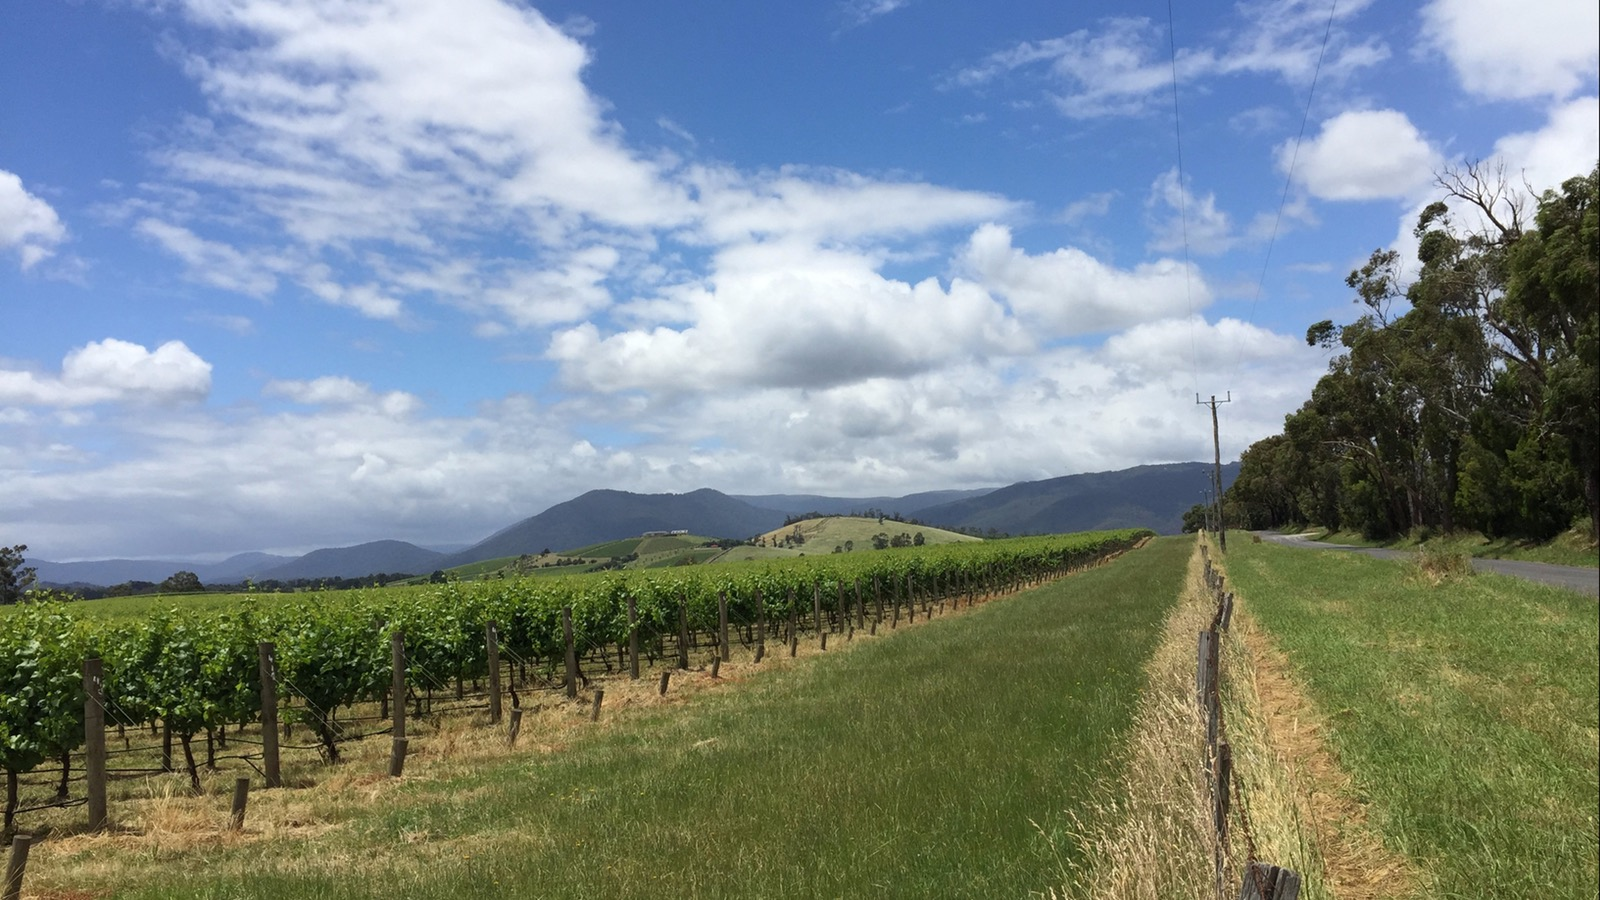 Green vines, hills and blue skies with patchy cloud in the Yarra Valley